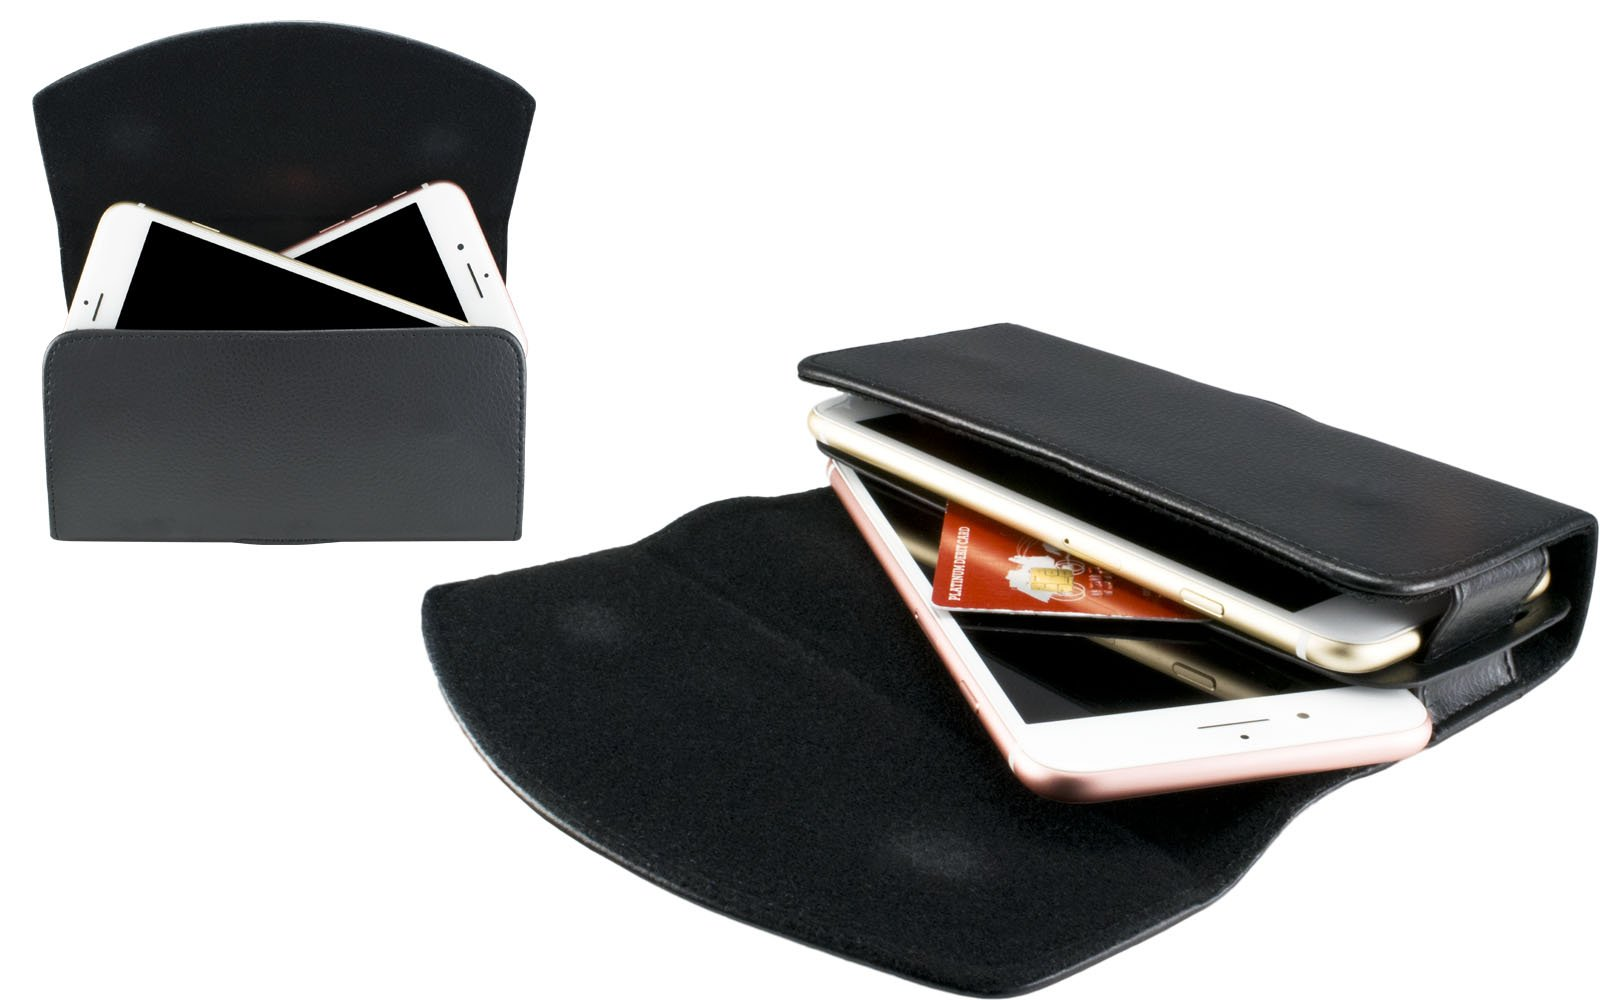 Premium Cell Phone Dual Case Pouch Double Decker Fits Two iPhone Xs Max, 8 Plus, 7 Plus, 6 Plus, 6S Plus with Ultra Thin Case/No Case/Similar (Each Phone Measuring 159 x 80 x 9mm or Less) by VOTEC (Image #3)